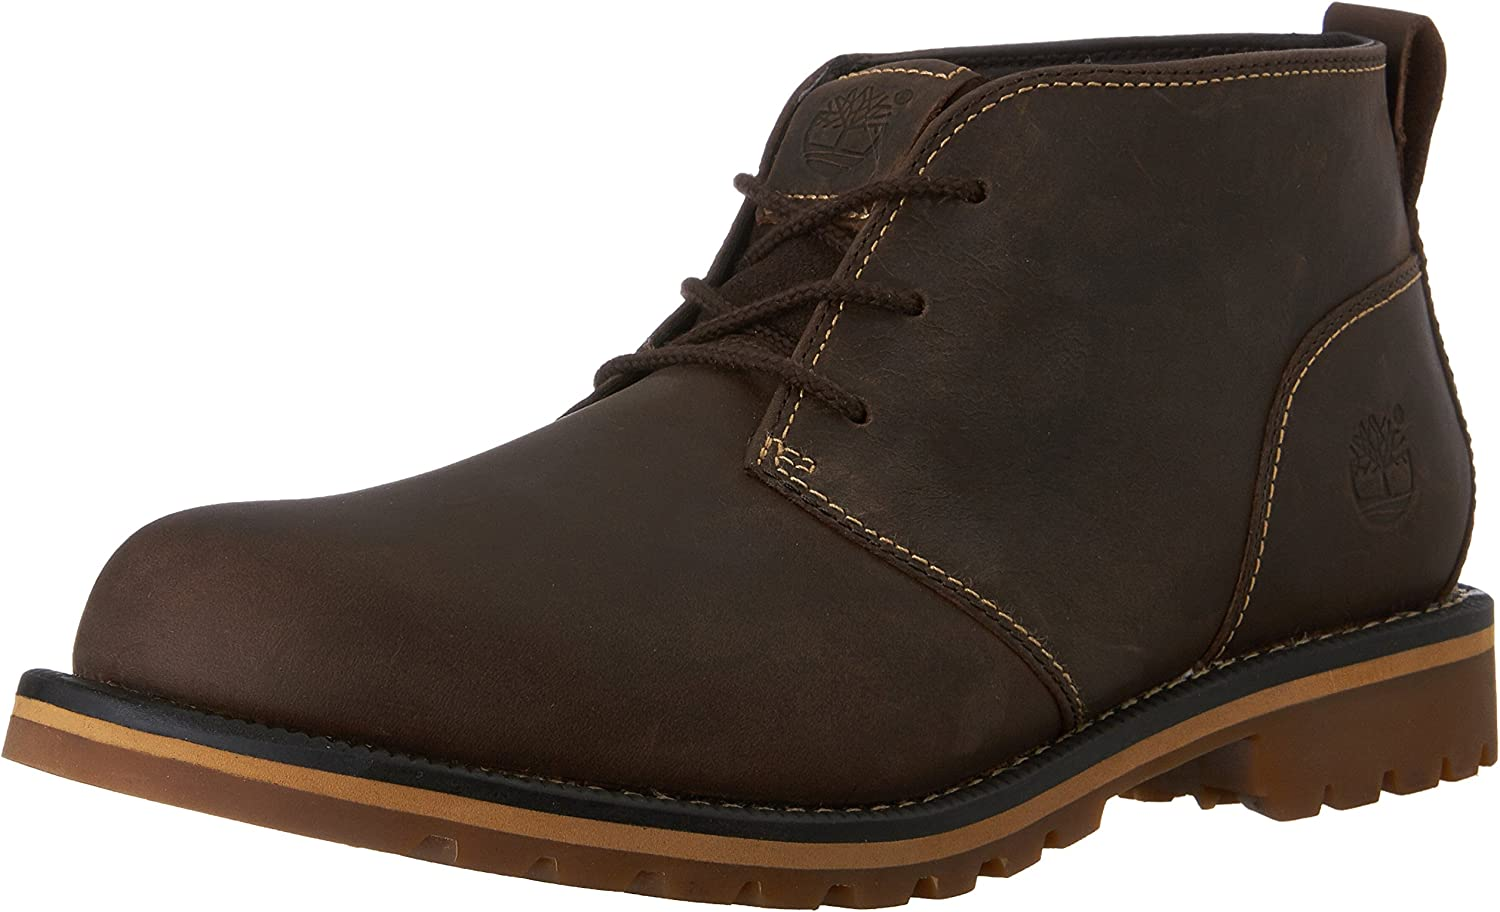 Timberland Safety and trust Men's Grantly Boot High material Chukka